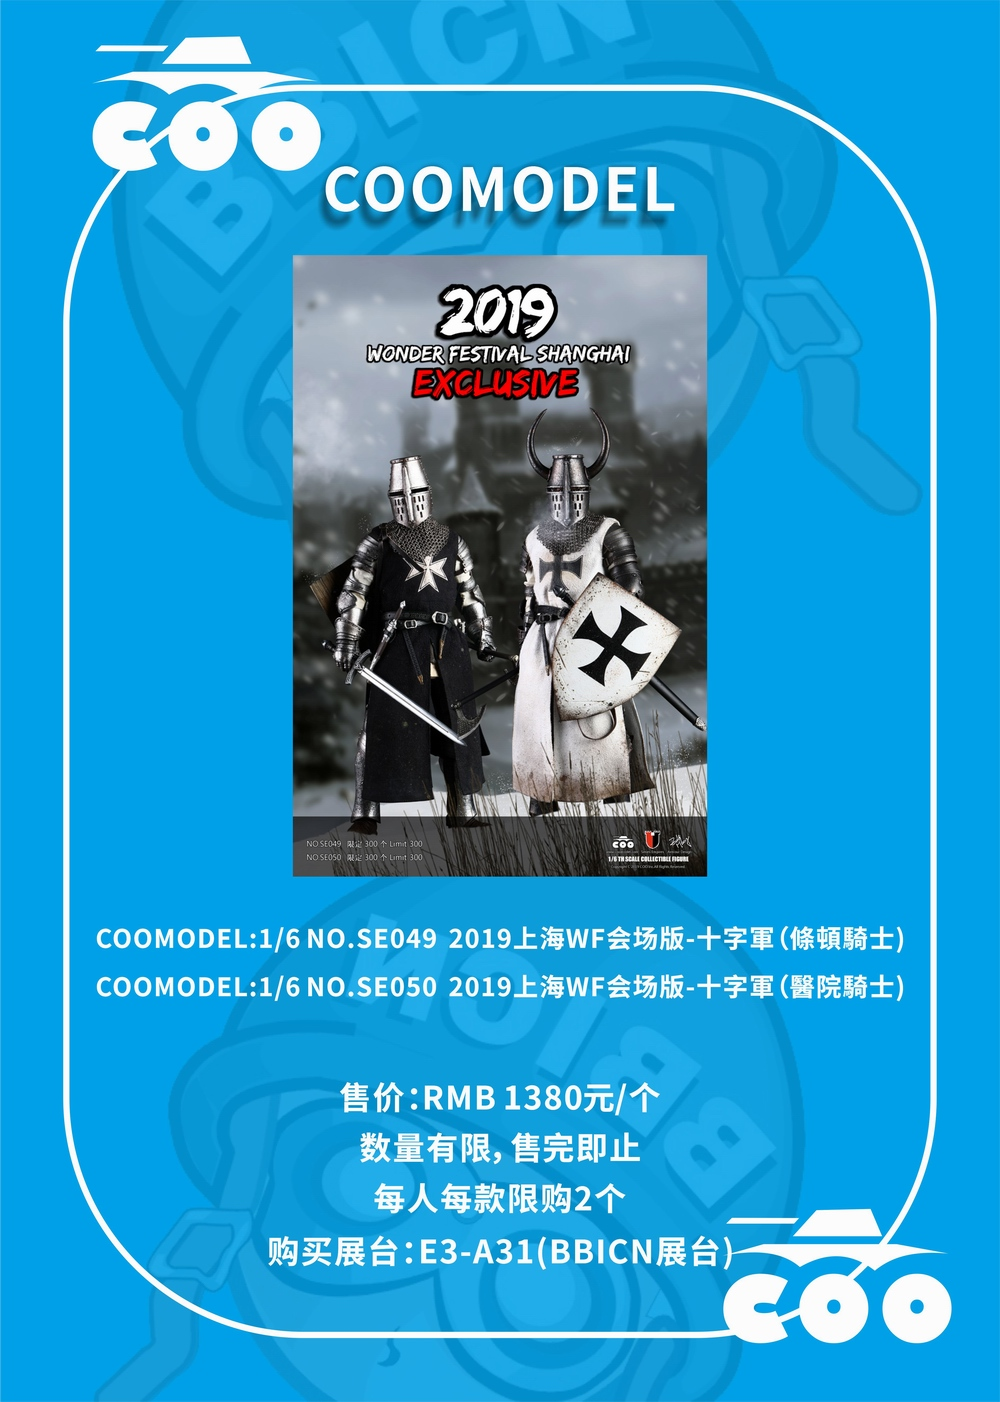 coomodel - NEW PRODUCT: COOMODEL [WF2019 Shanghai Conference Edition]: 1/6 Crusader's Teutonic Knight & Hospitaller Knight [Die Casting Alloy] 150950i6tyaejtzaekyzwa